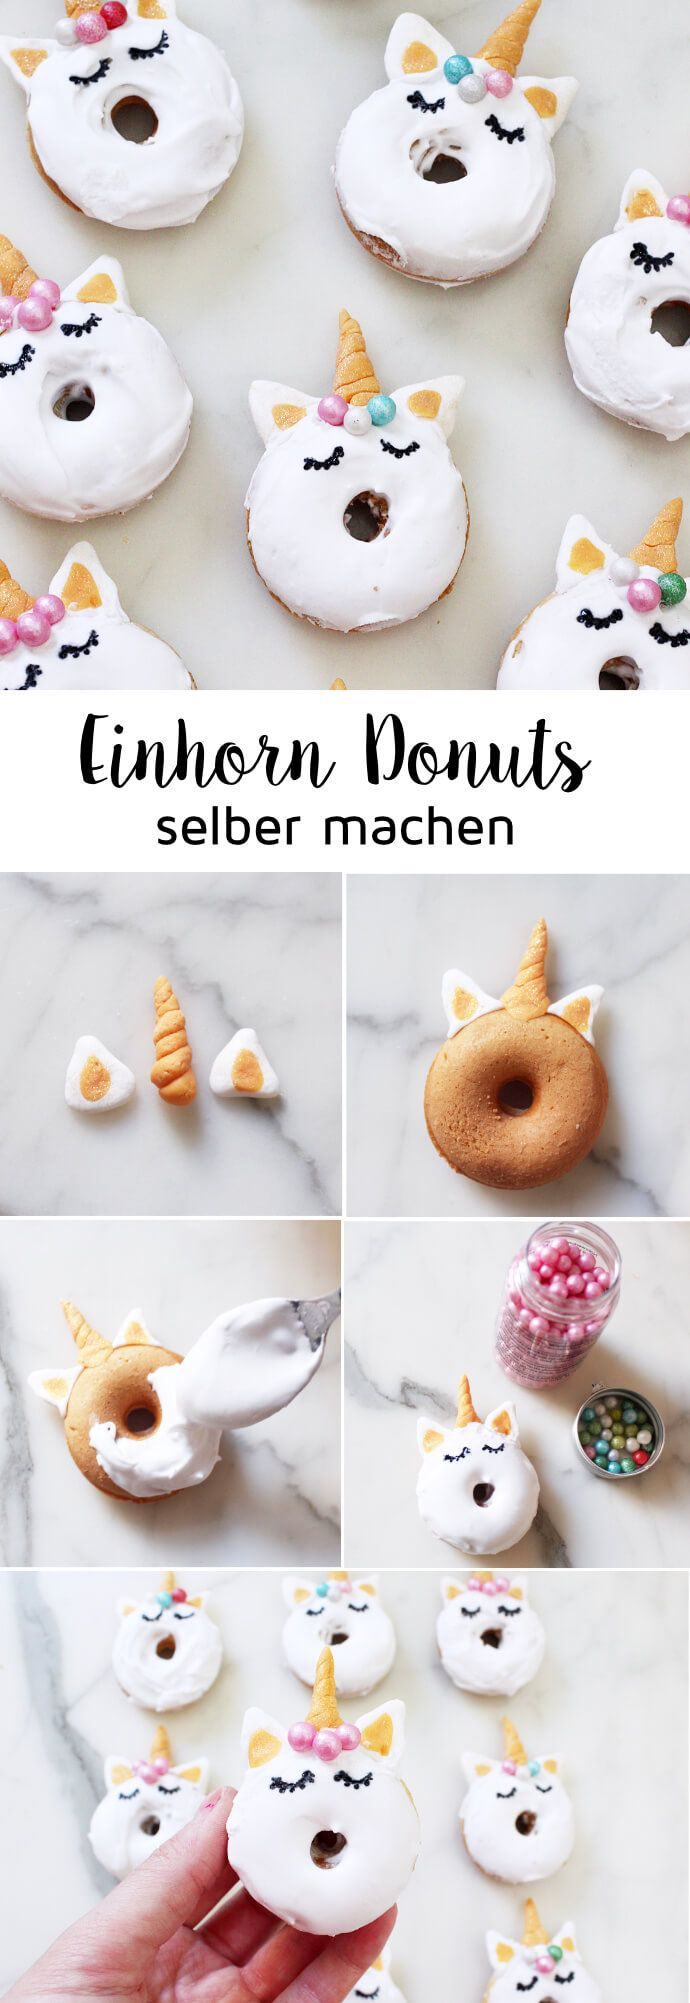 141 besten donuts backen rezepte bilder auf pinterest einhorn diy projekte und donuts backen. Black Bedroom Furniture Sets. Home Design Ideas